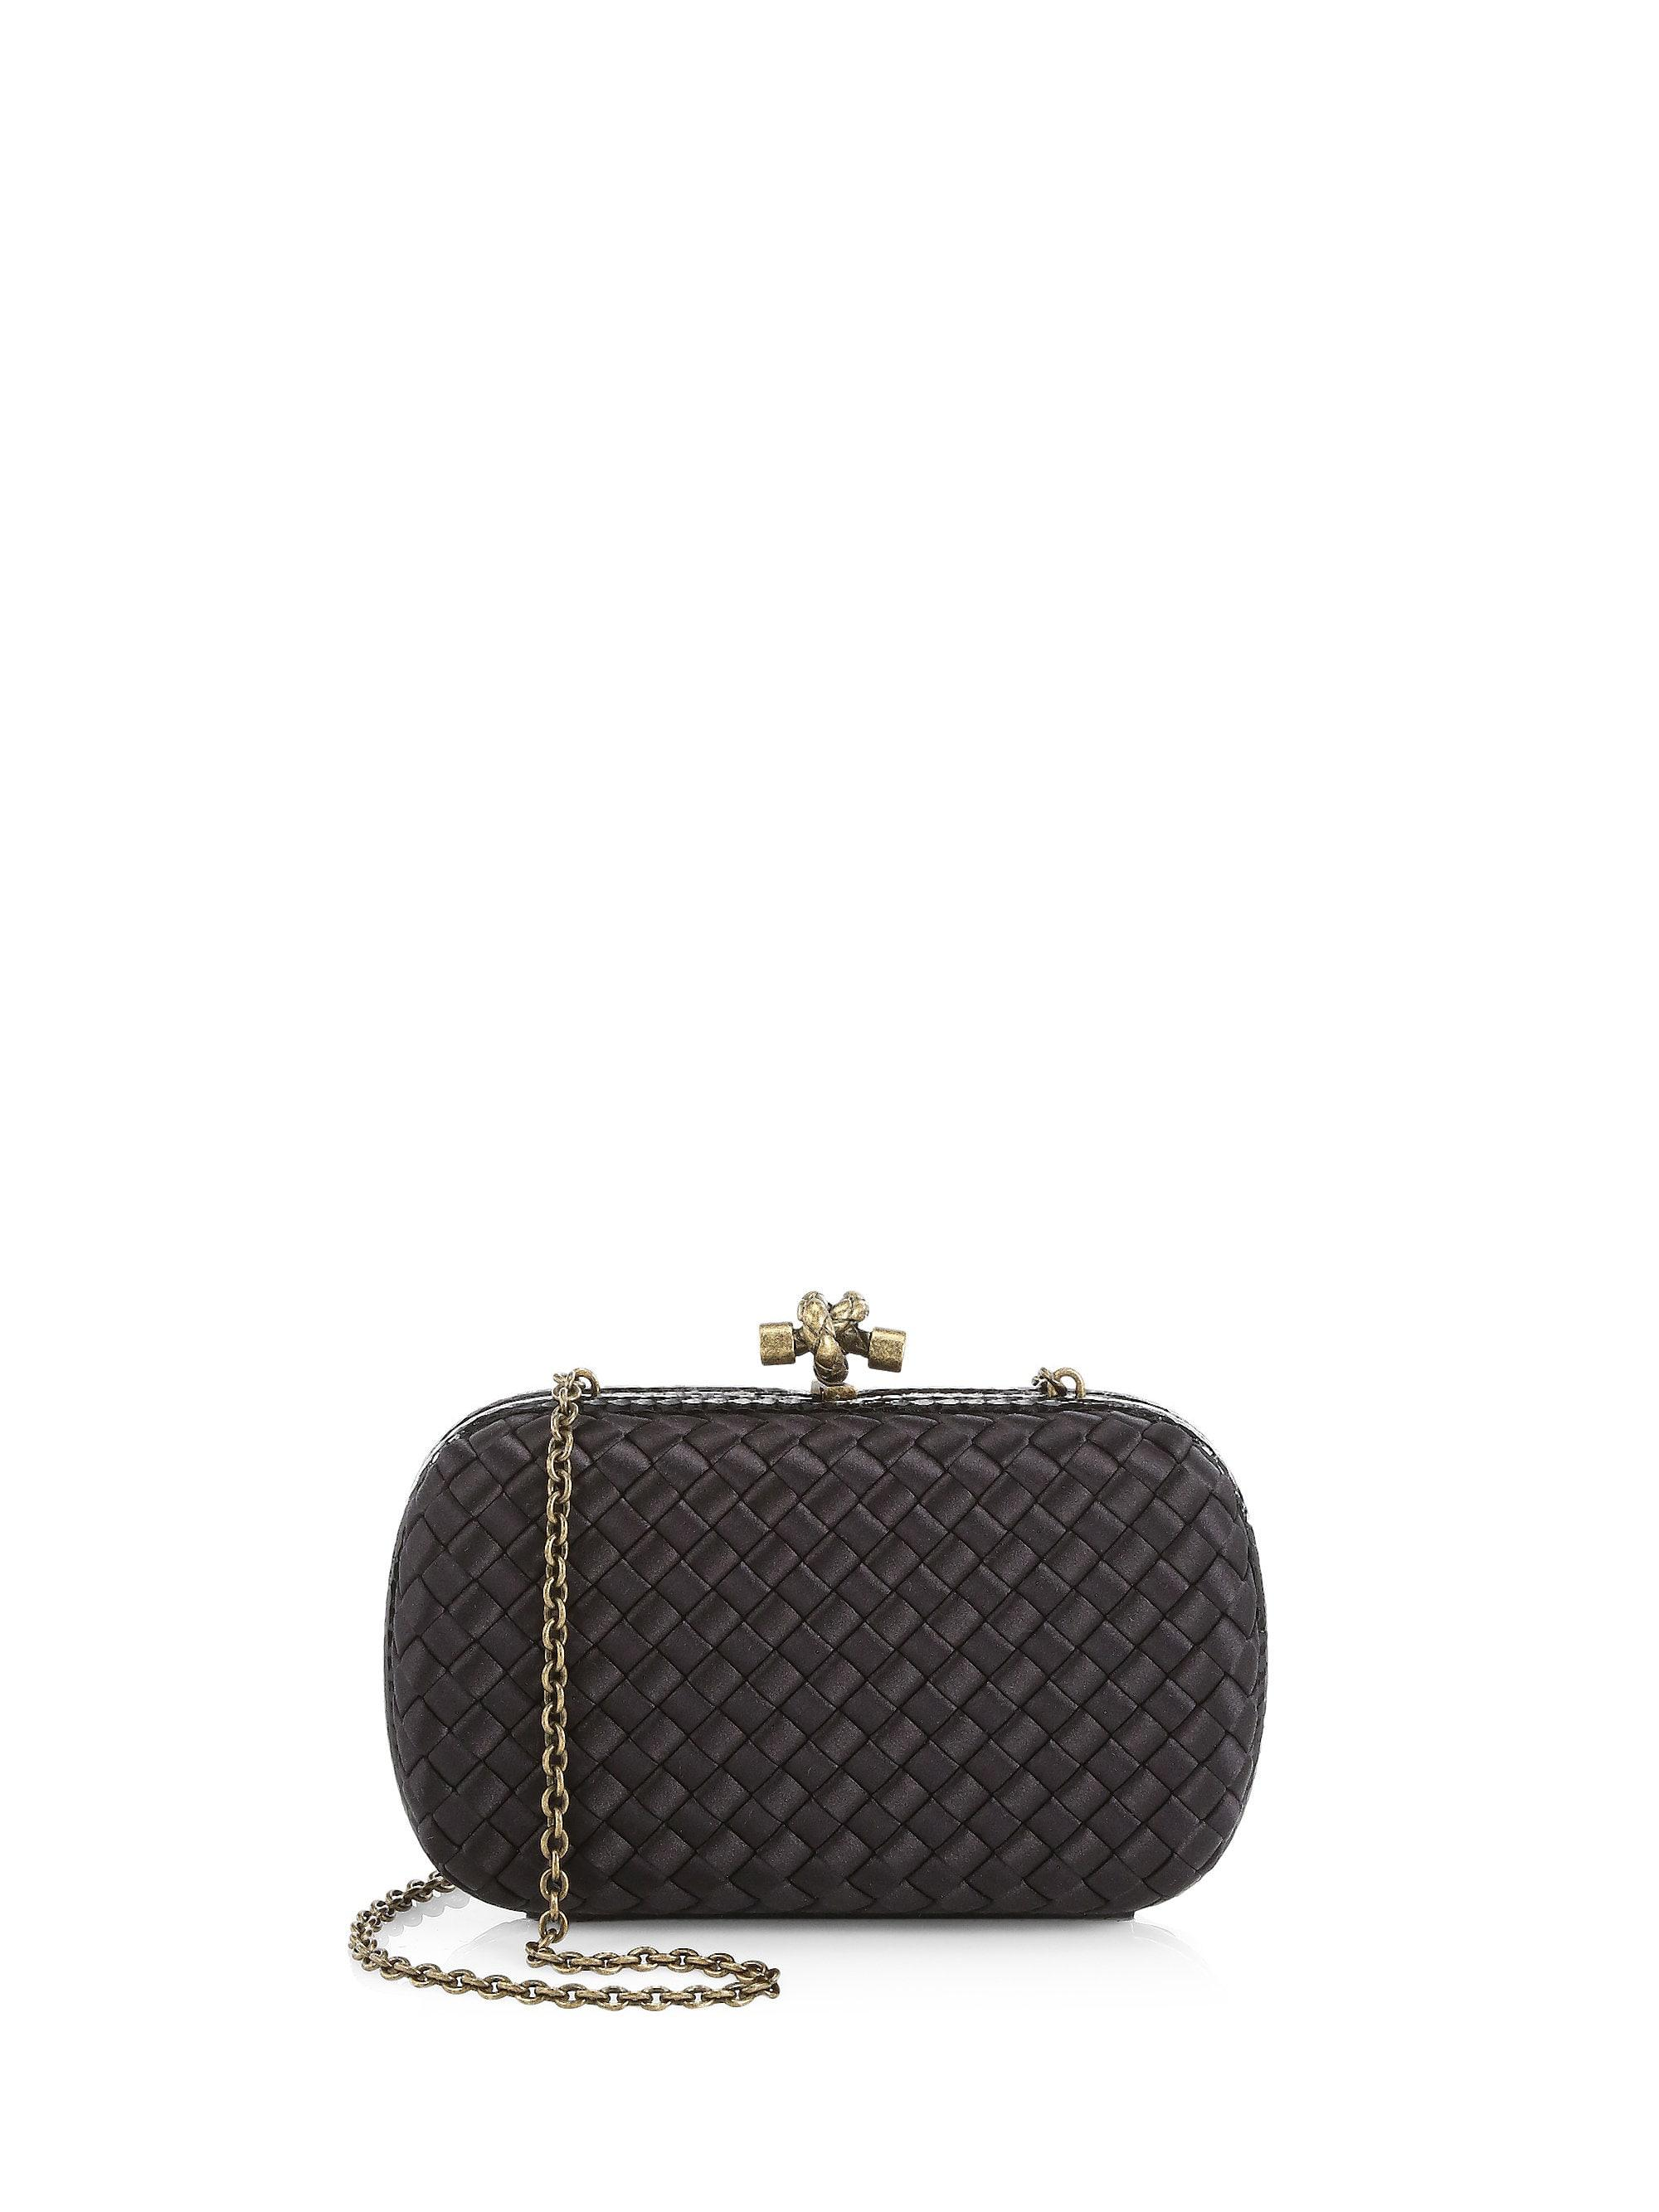 c54d40544d Bottega Veneta Chain Knot Satin Clutch in Black - Lyst